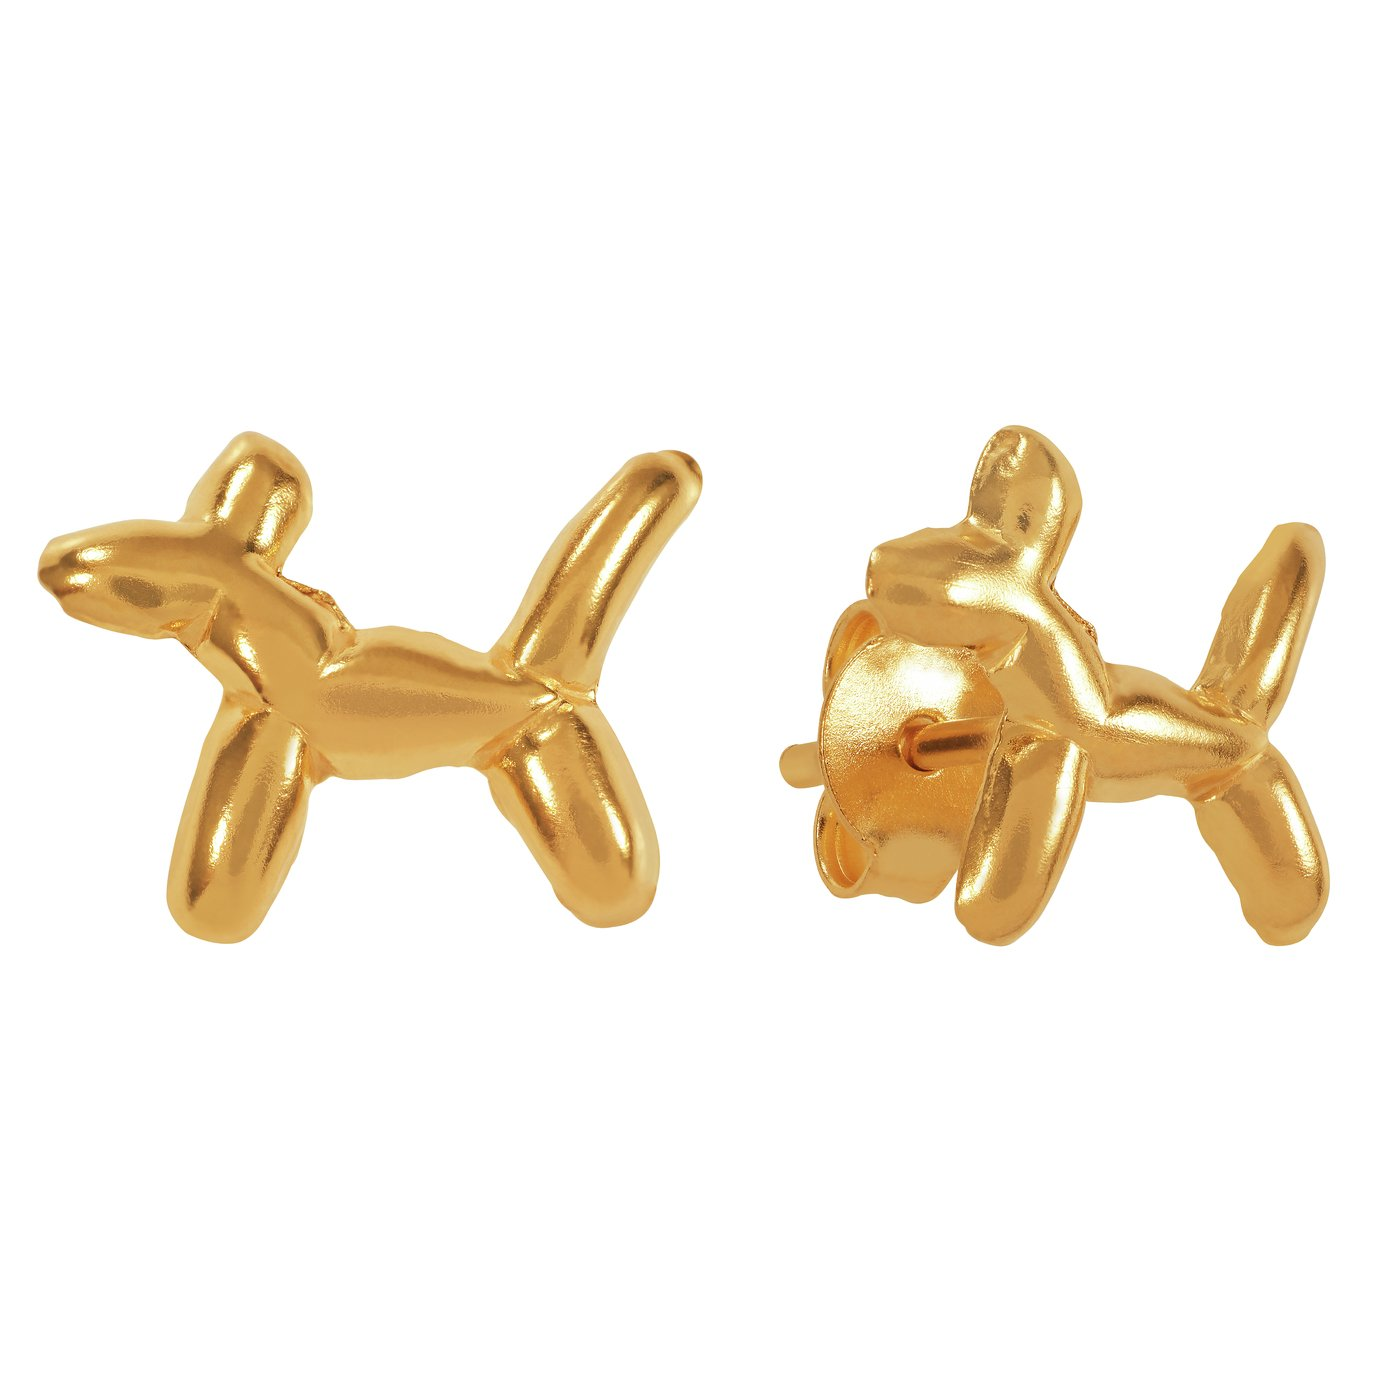 Revere 9ct Gold Plated Dog Stud Earrings